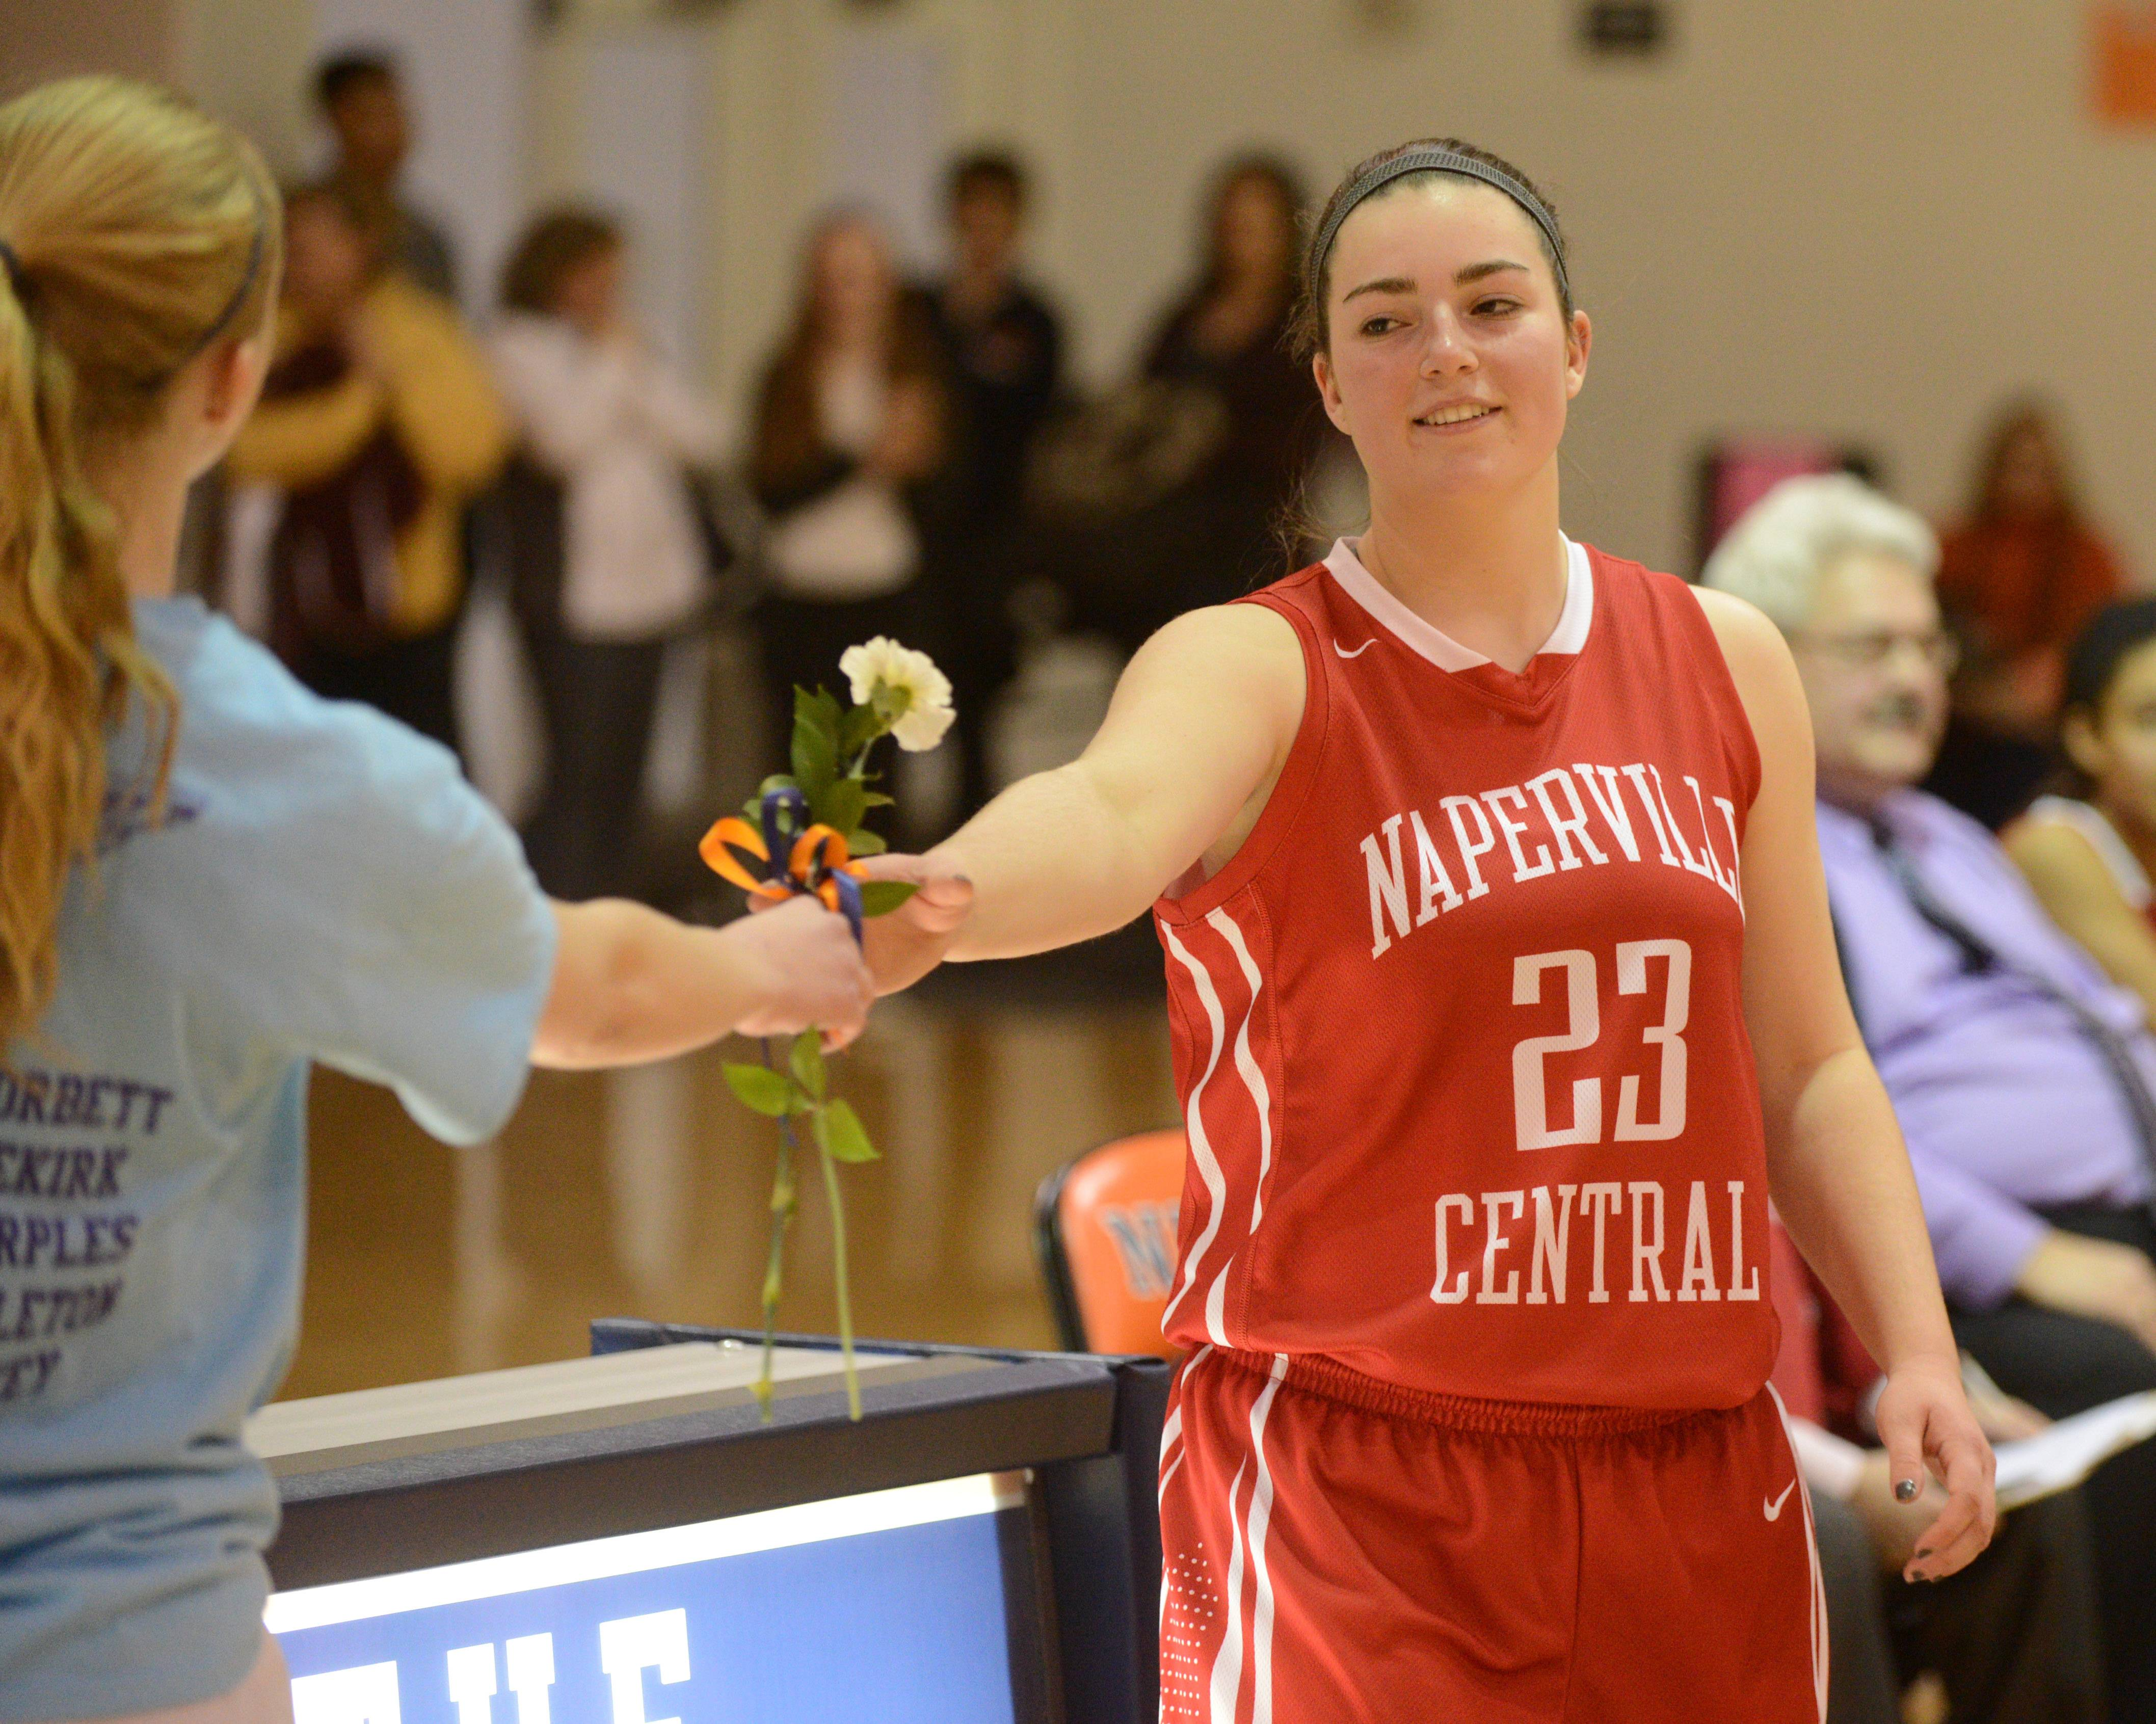 Images from the Naperville Central vs. Naperville North girls basketball game on Thursday, January 29.